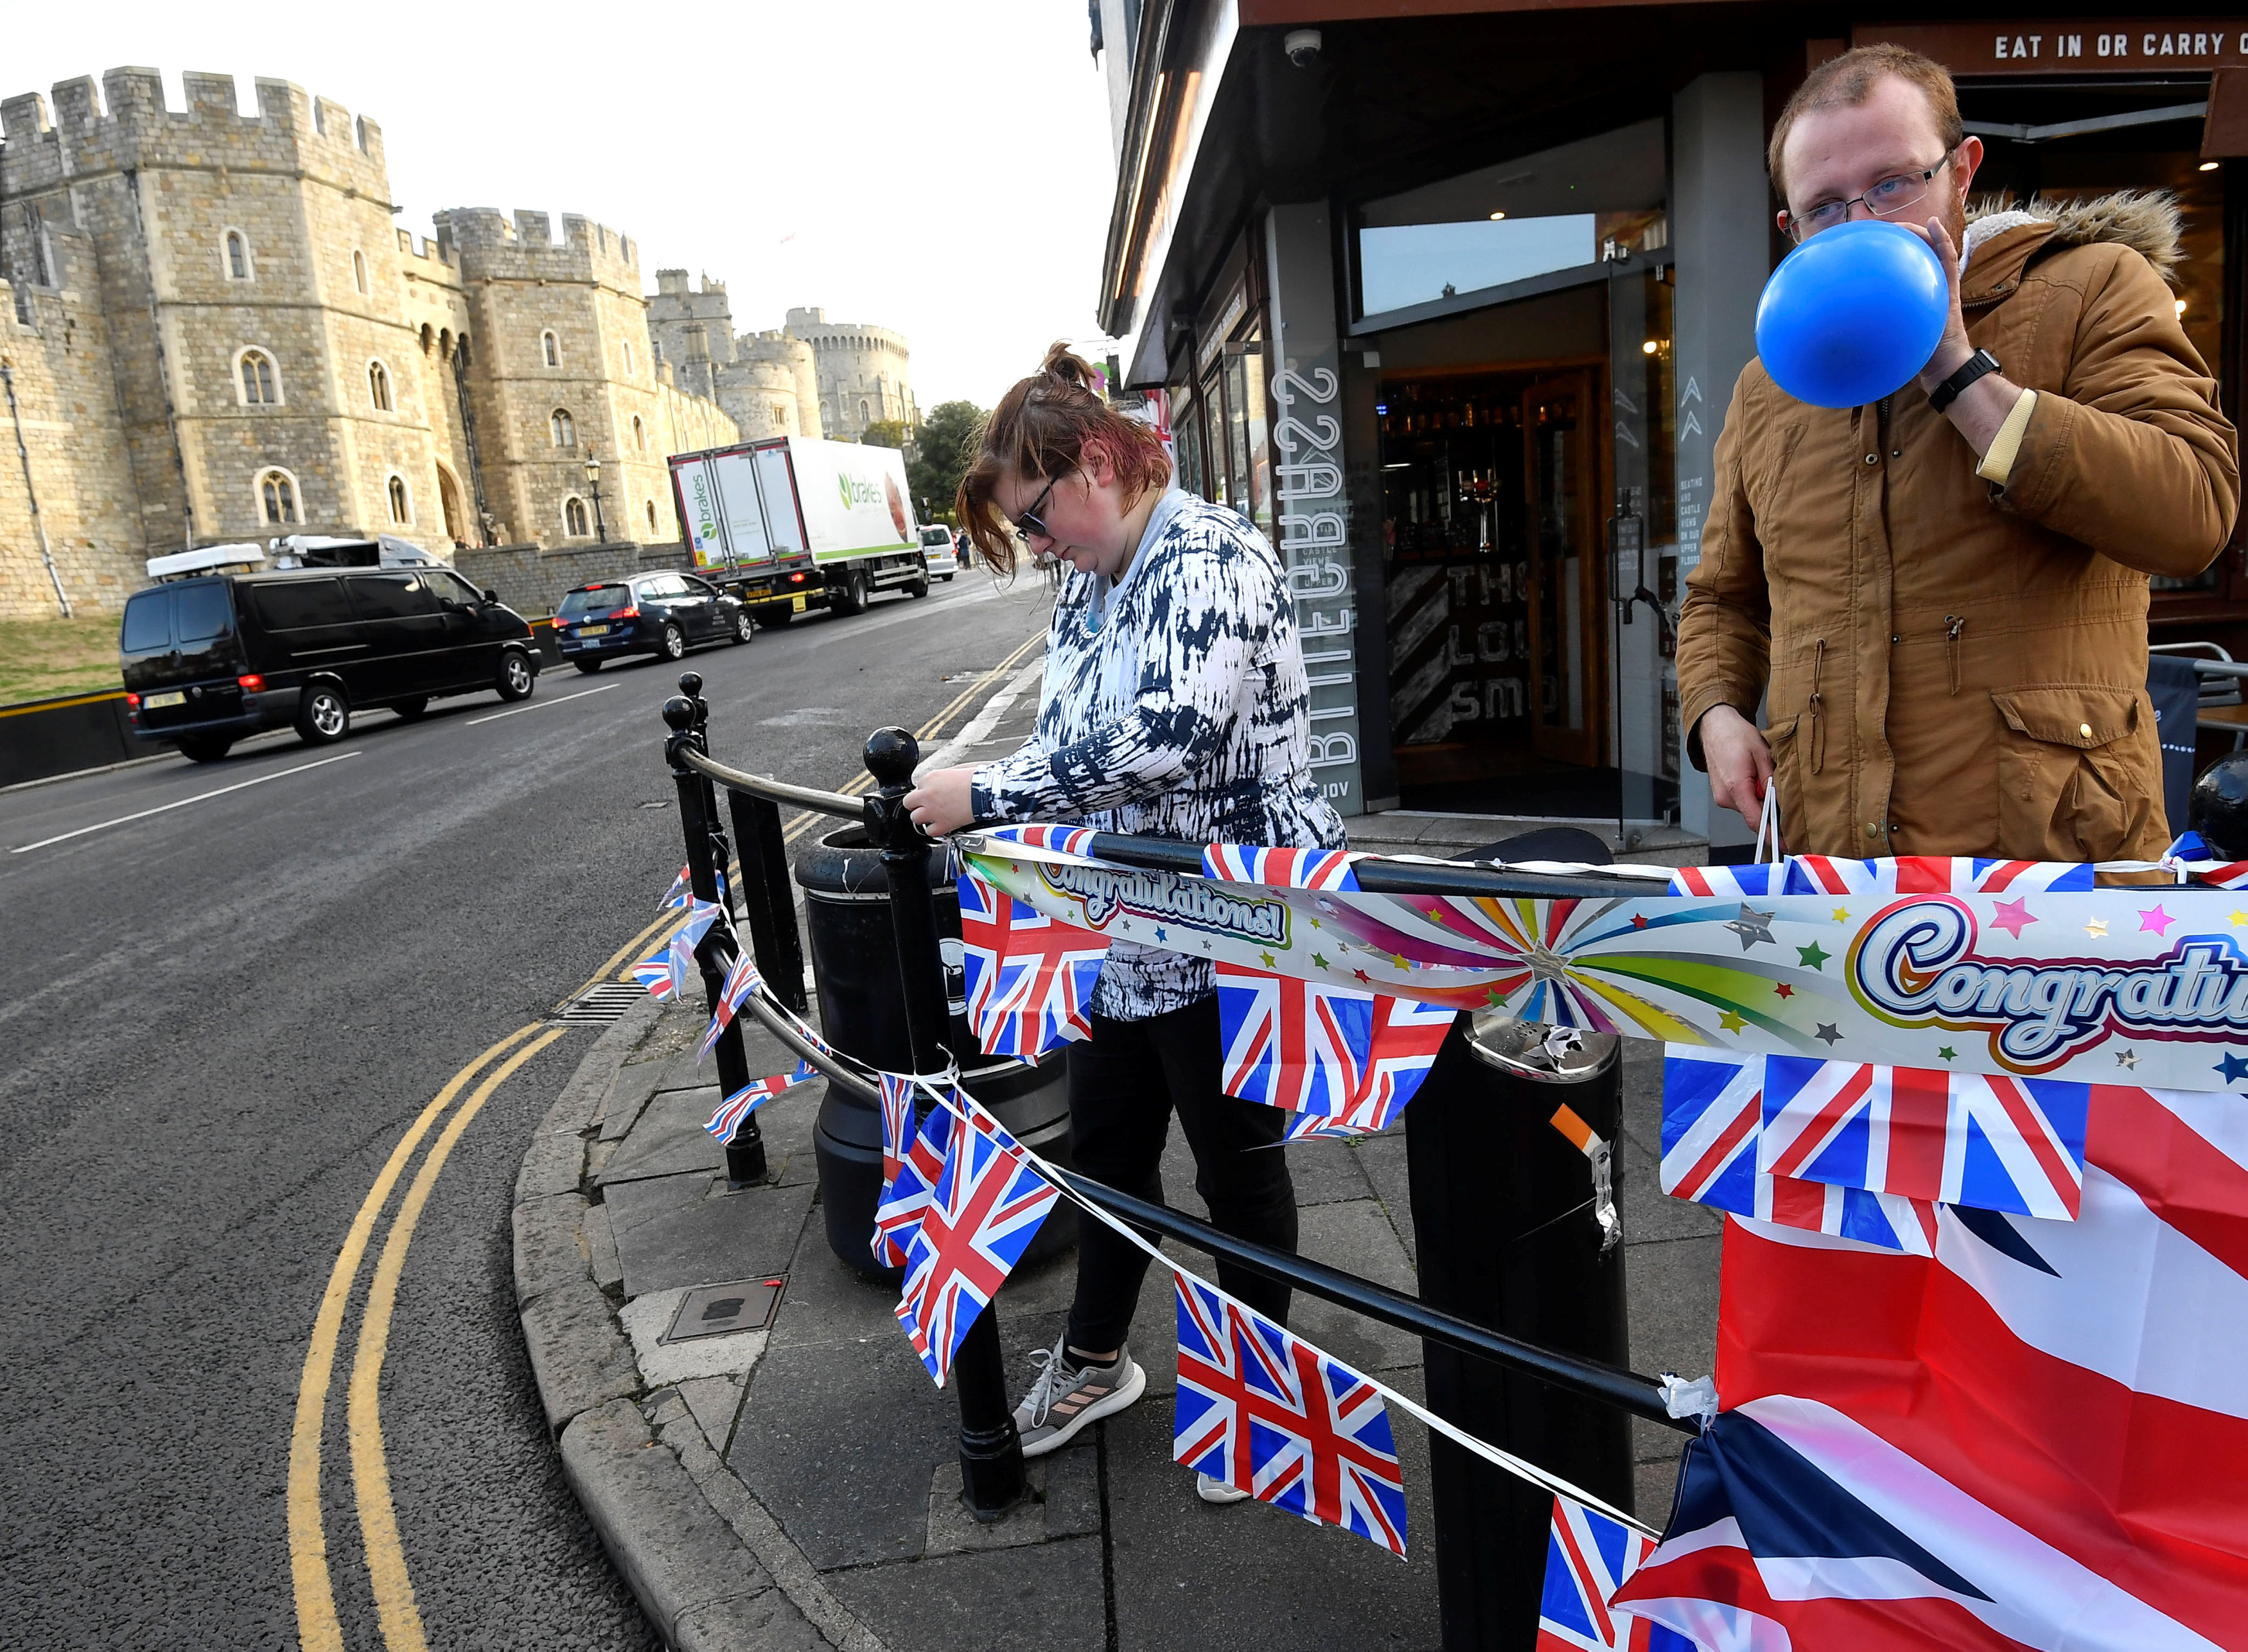 People blow up balloons and string up bunting, on the day before the royal wedding of Britain's Princess Eugenie and Jack Brooksbank, in Windsor